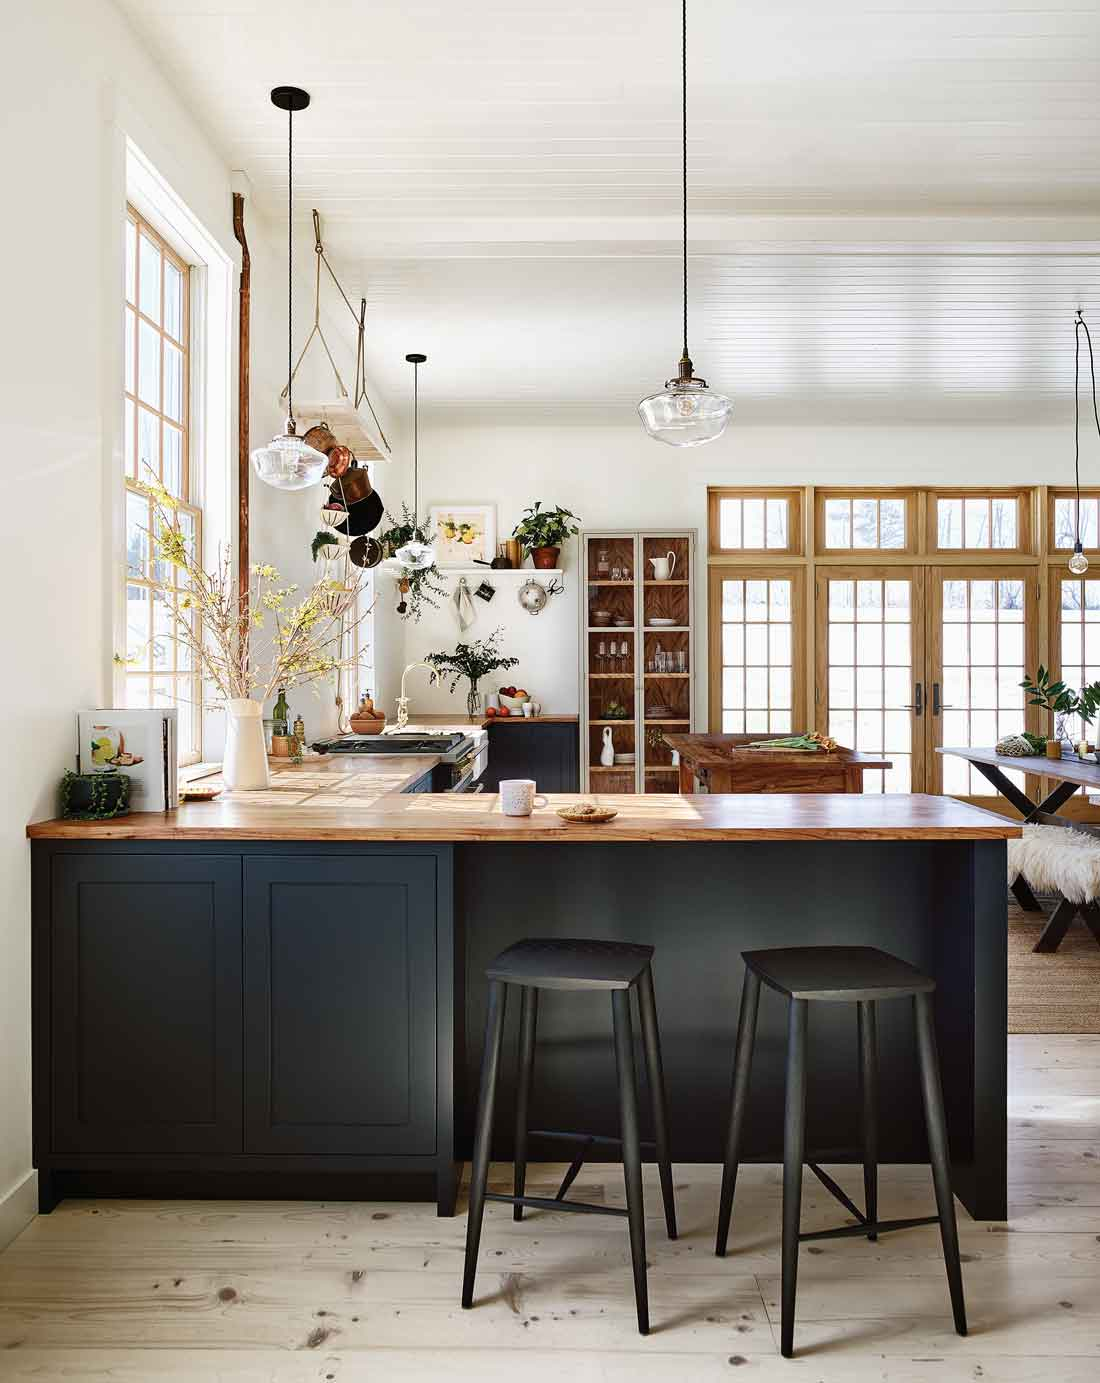 Morgan and Ben Block went with blue-black Shaker-style cabinets crowned with a pecan countertop in their kitchen